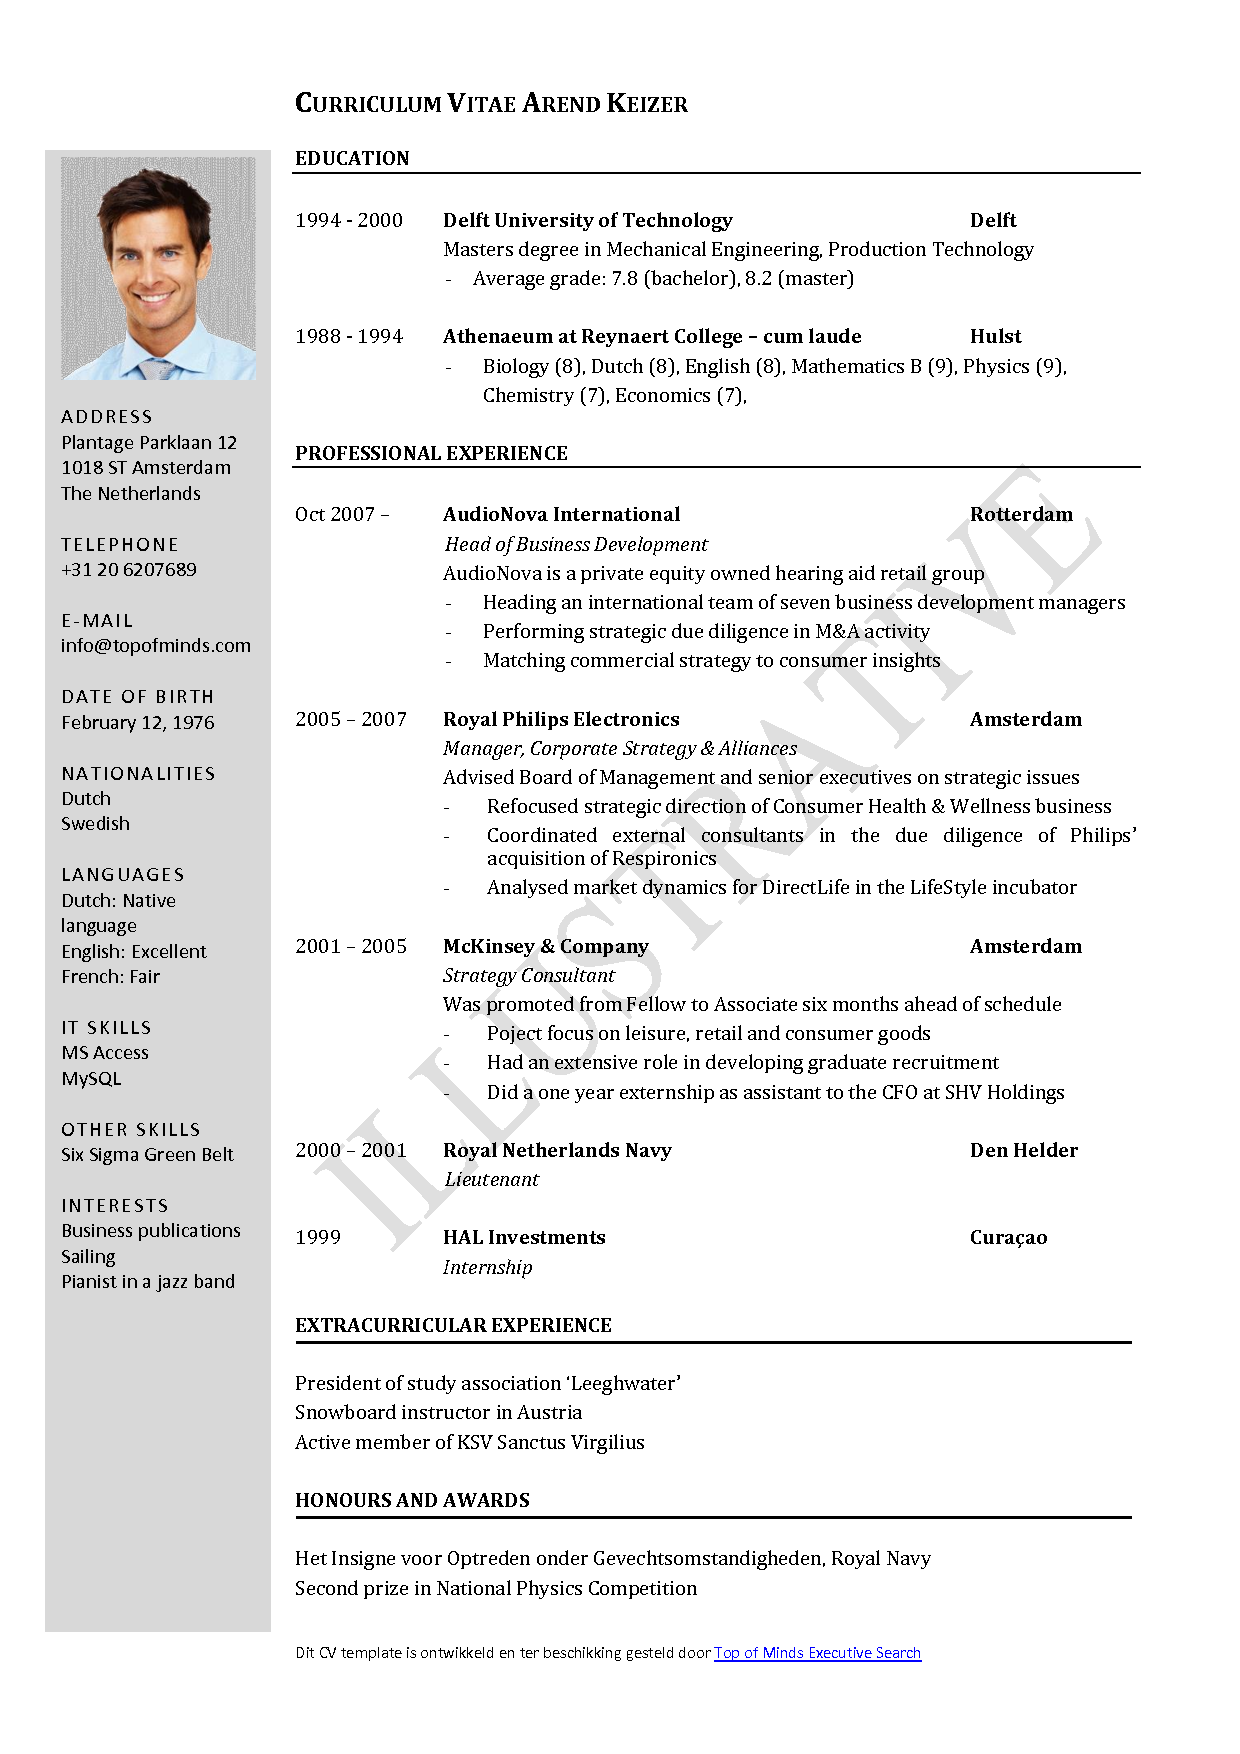 Resume Layout Word Free Curriculum Vitae Template Word Download Cv Template When